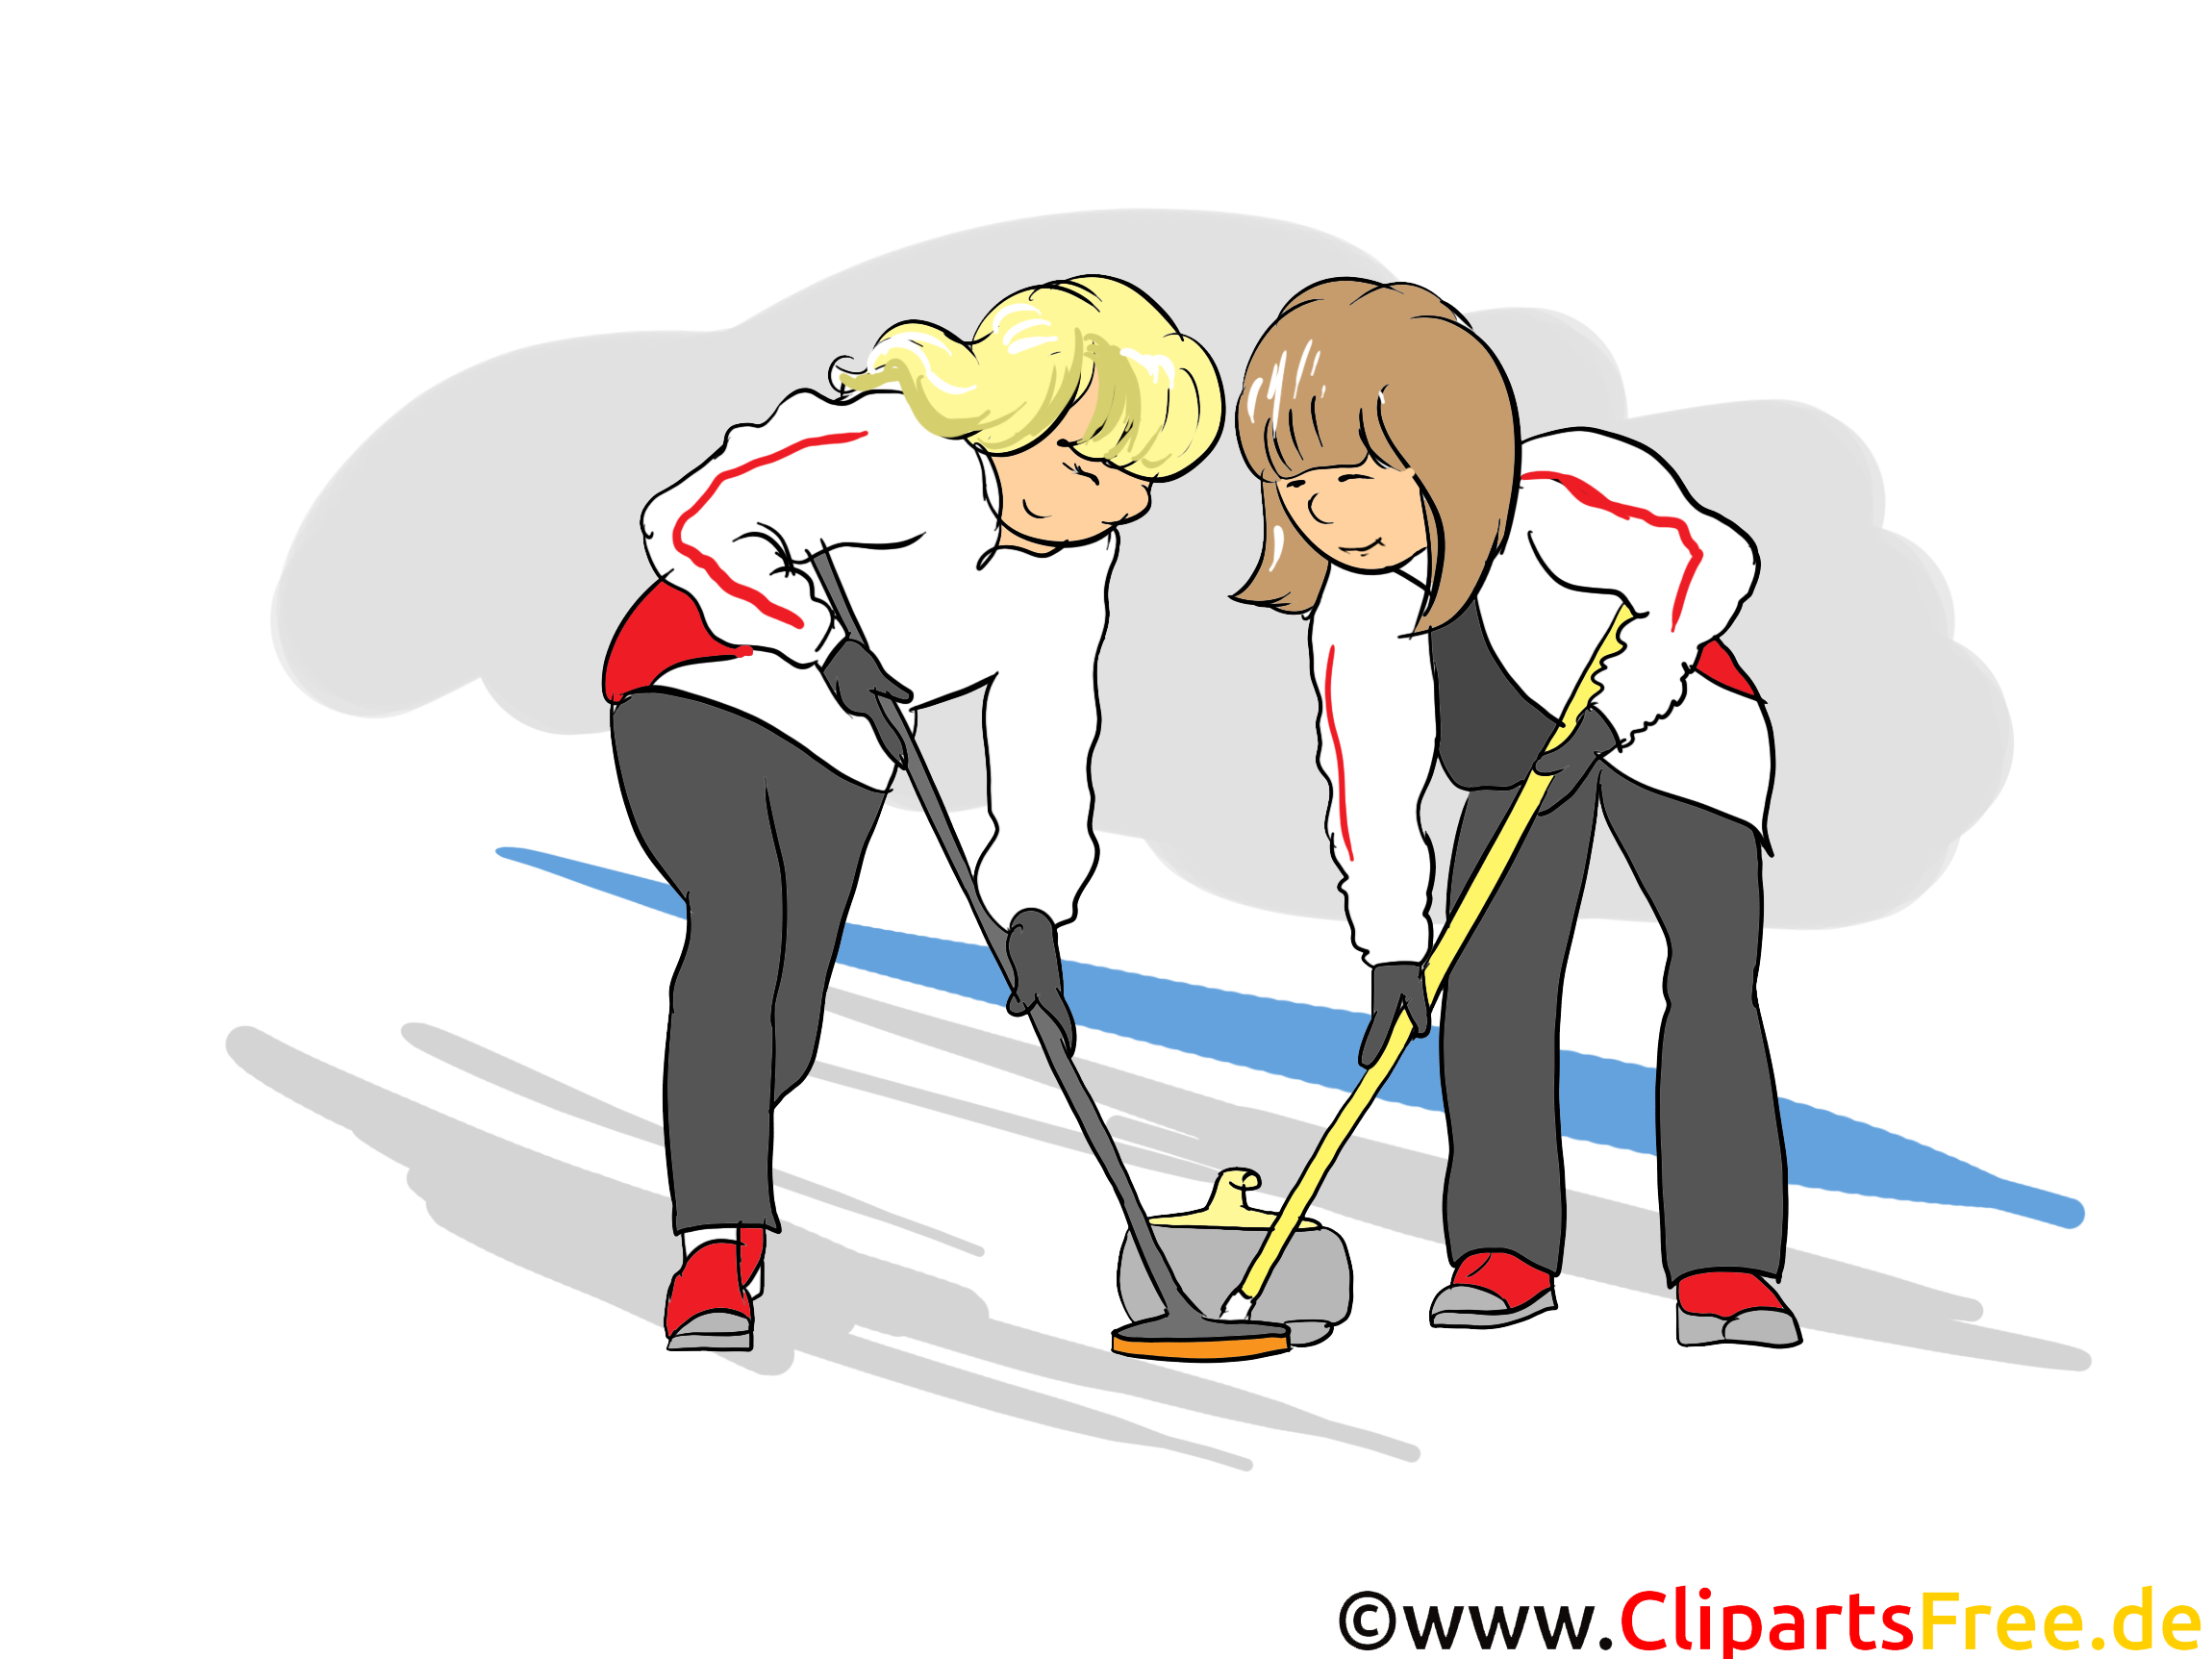 Curling Clipart Bild Cartoon Comic Illustration